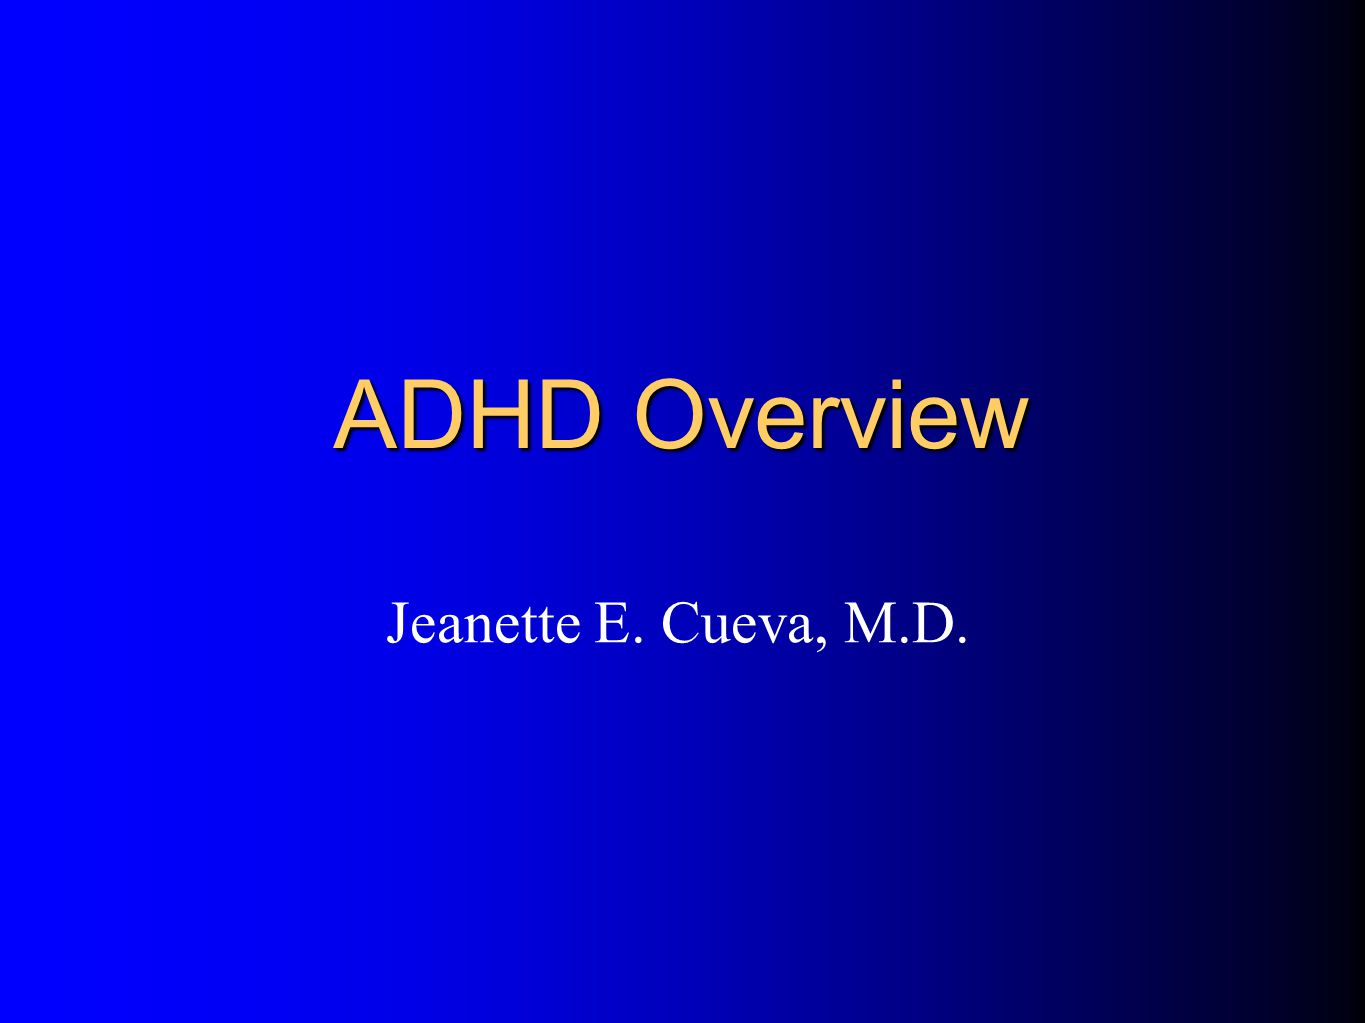 Inattention Impulsivity/Hyperactivity ADHD: Core Symptom Areas